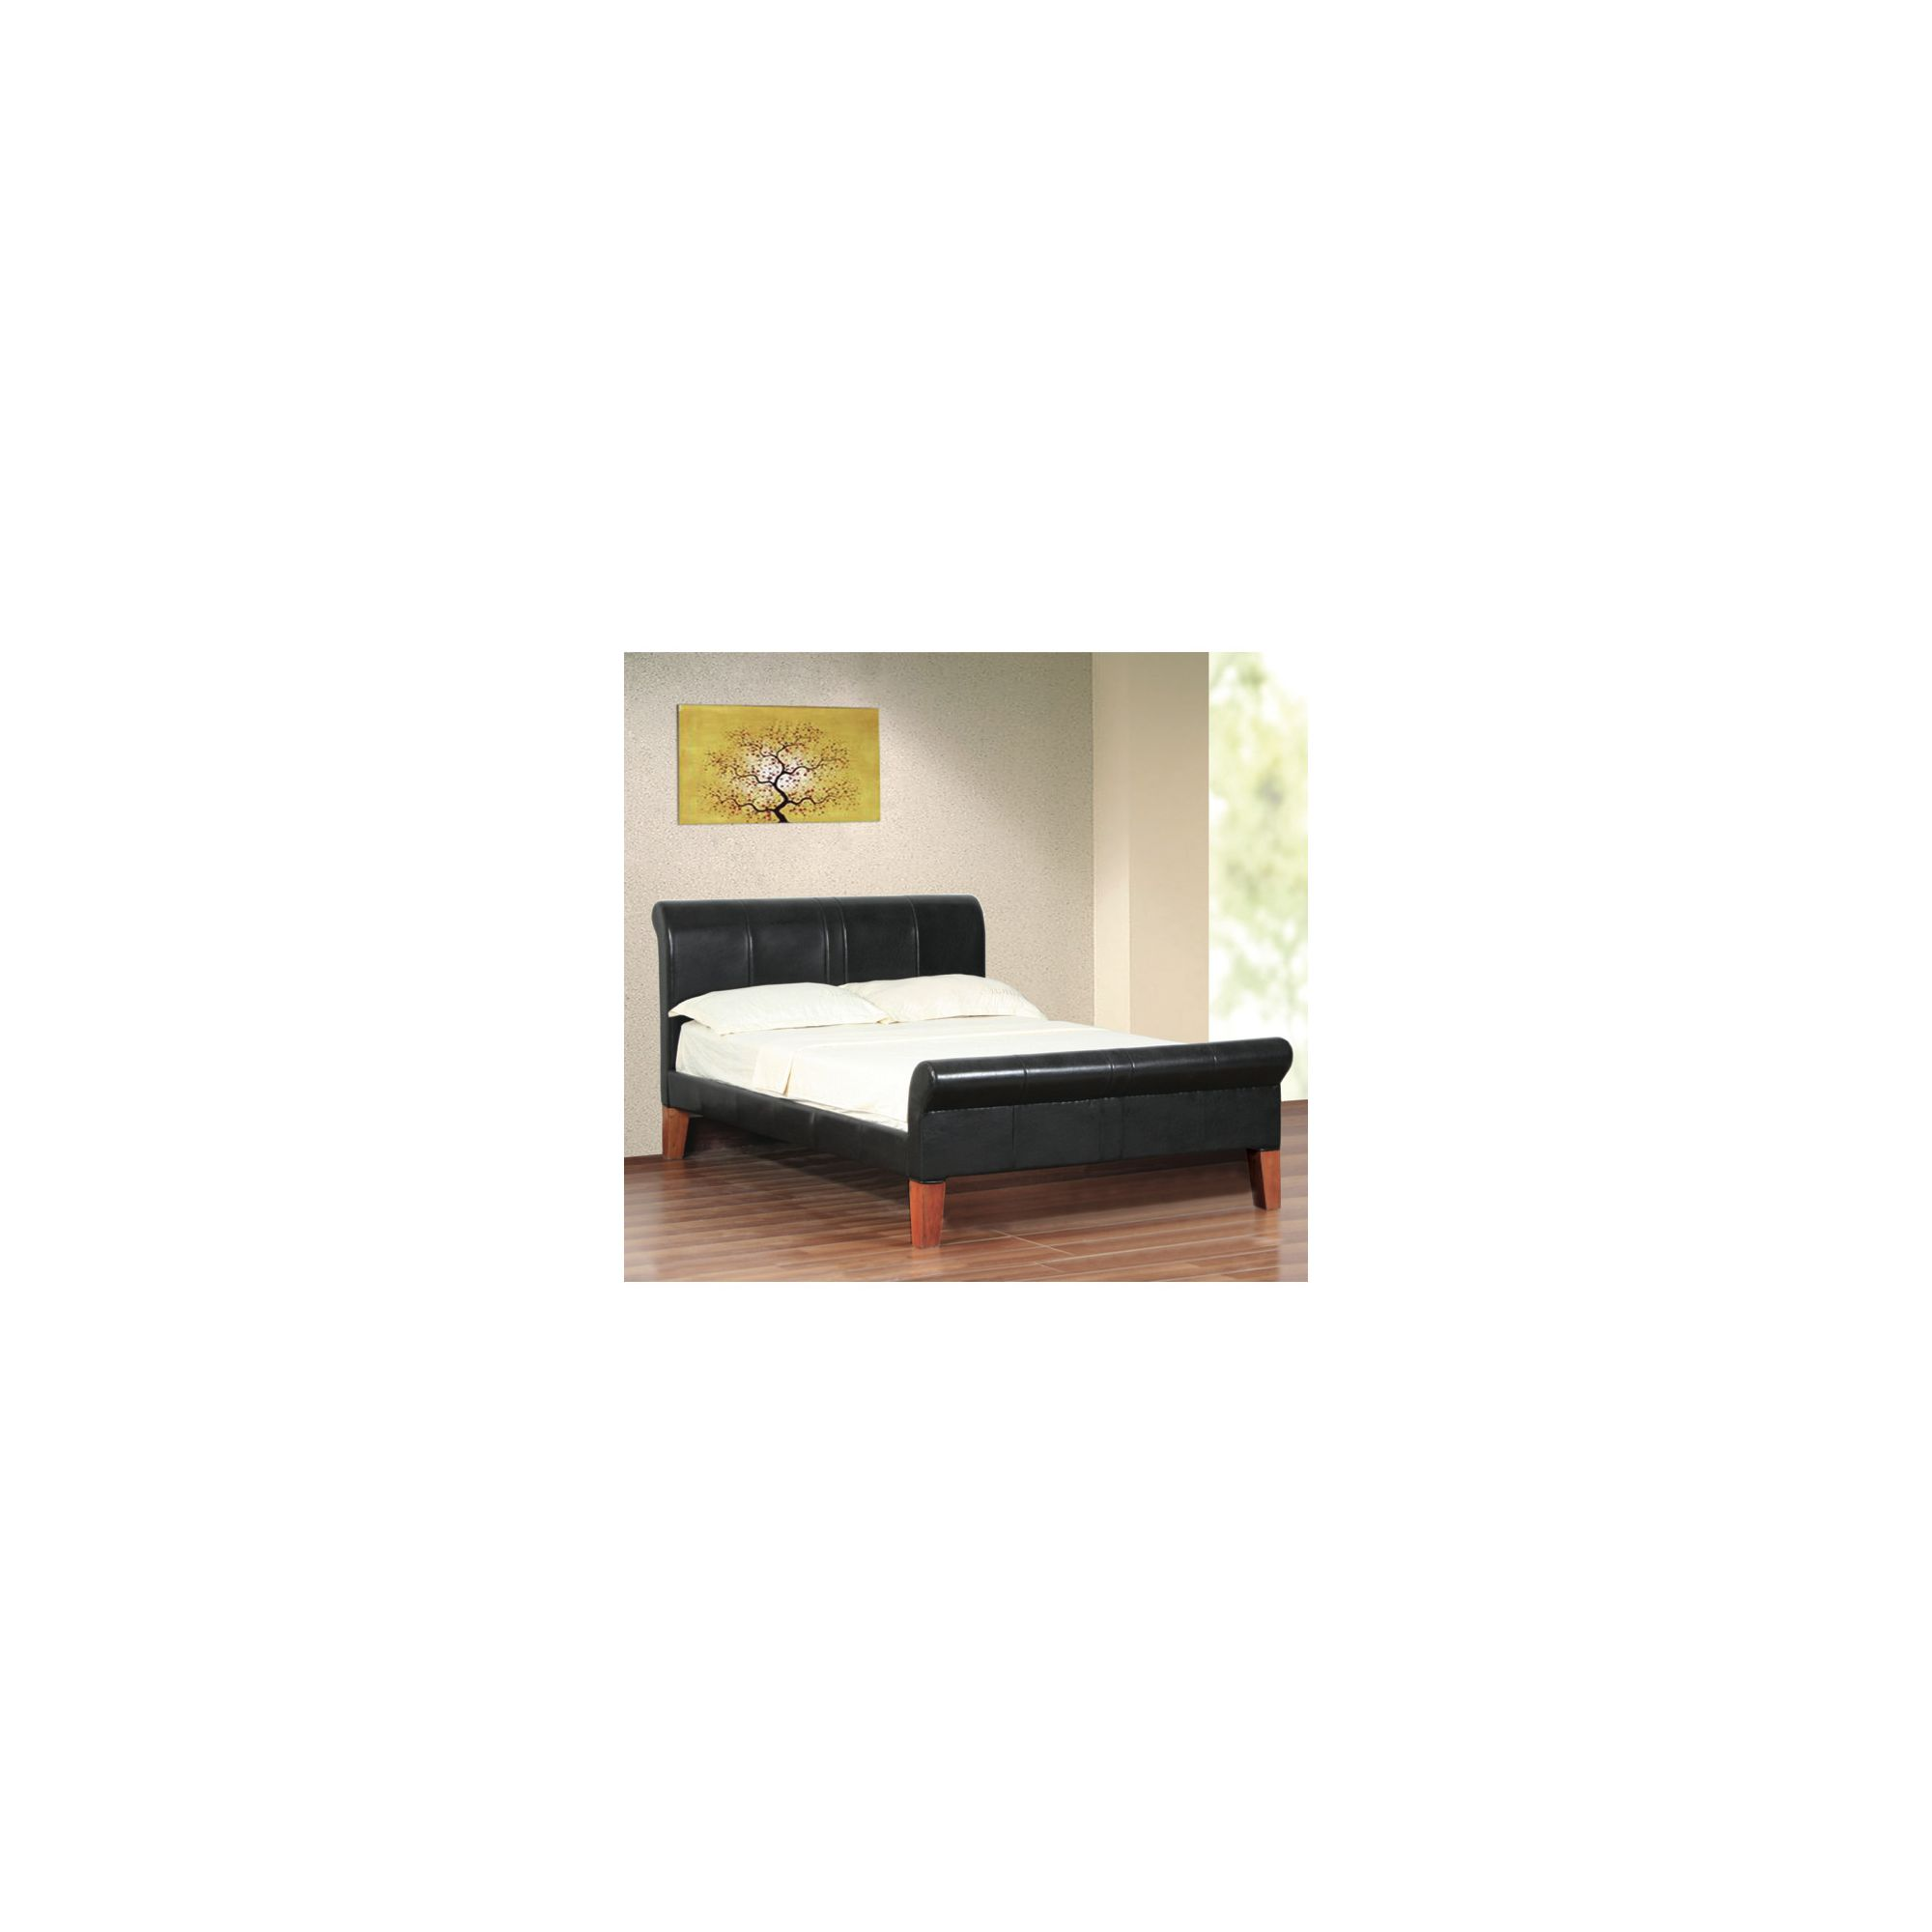 Elements Ottowa Bed - Black - Double at Tesco Direct